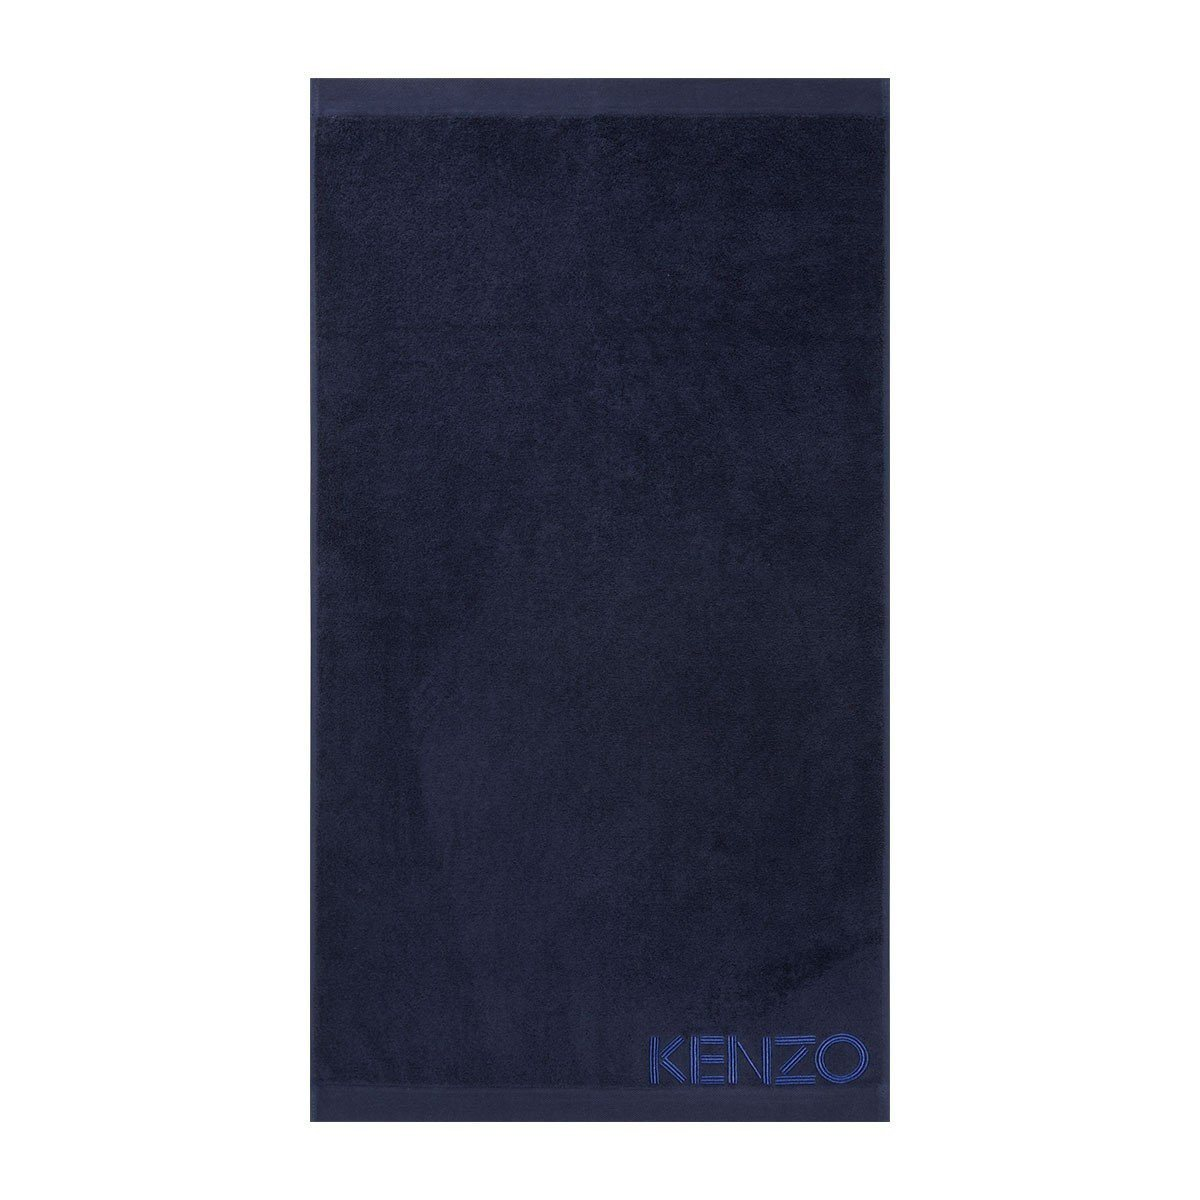 Iconic Navy Guest Towels (Set of 4)